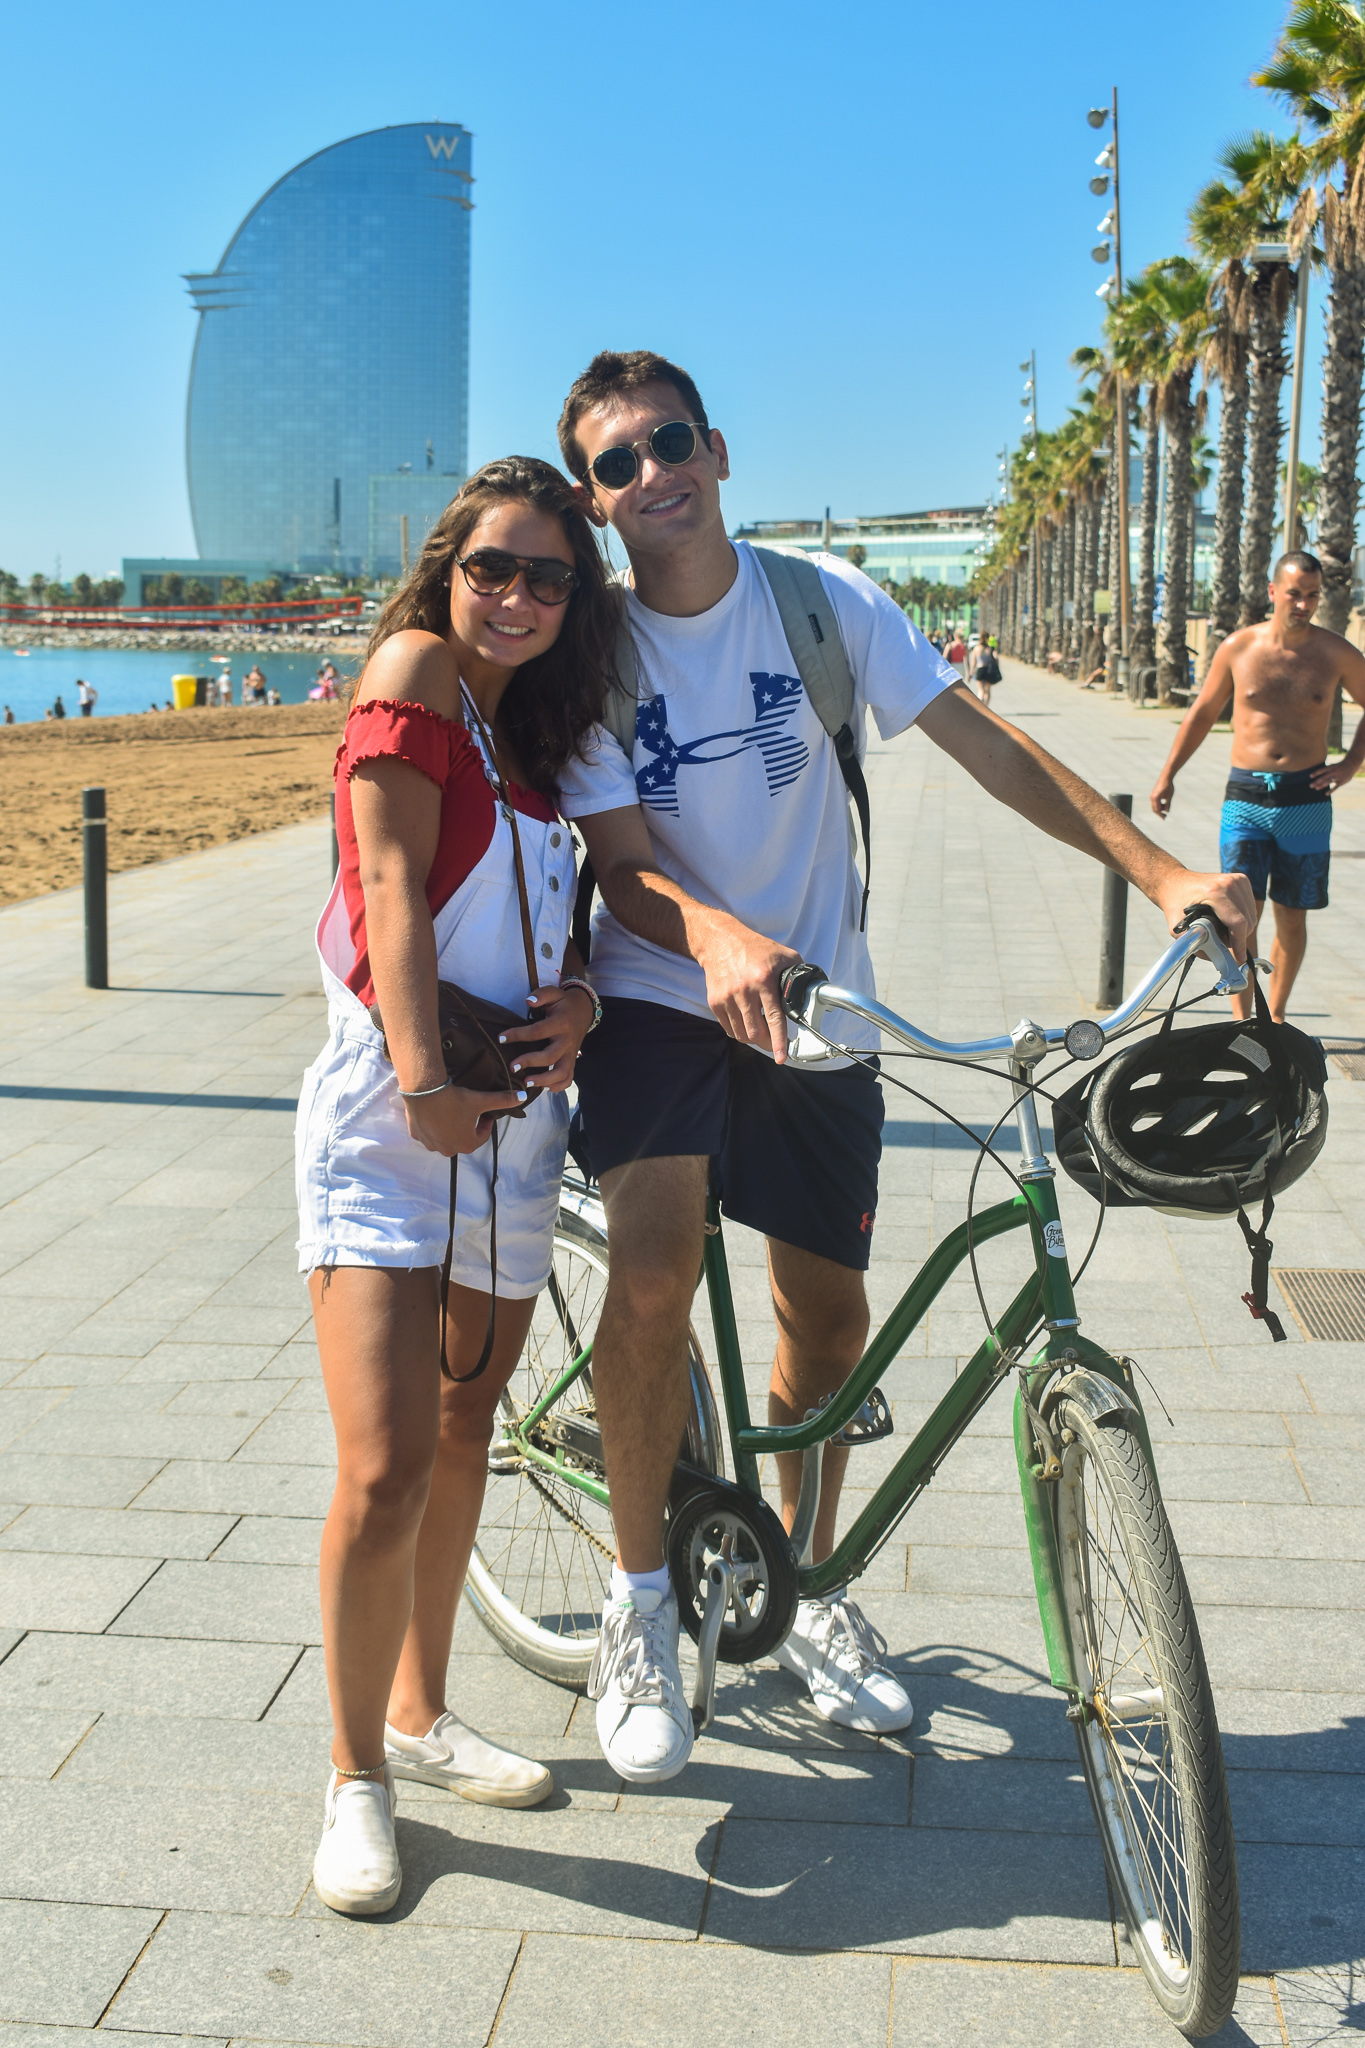 Summer Program - Group Travel   Travel For Teens: Europe for Older Teens - Spain and Portugal